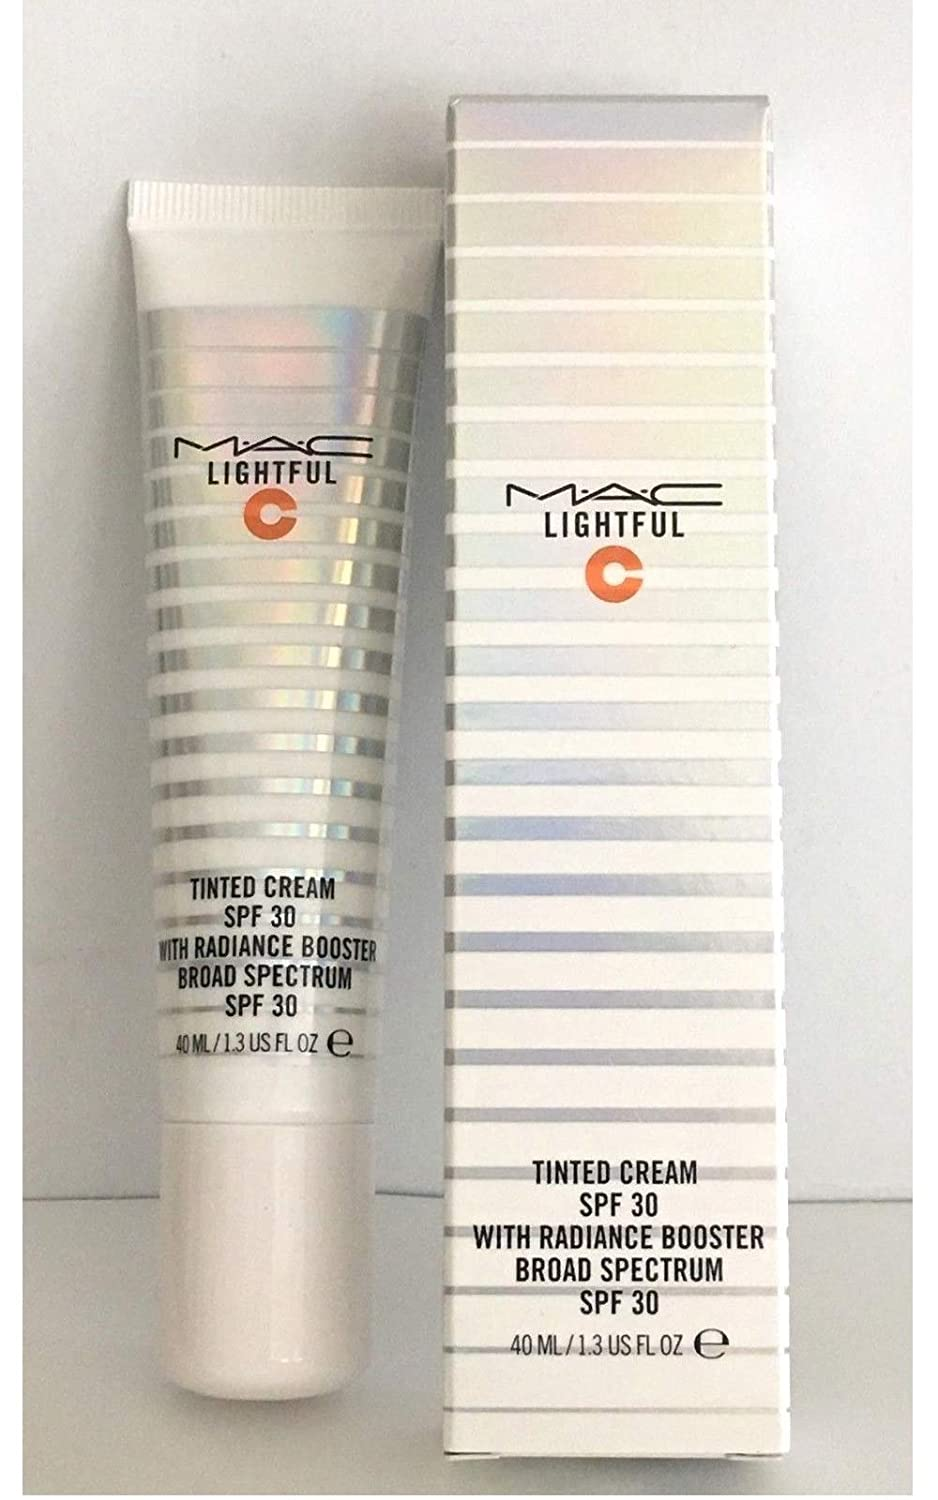 M.A.C Lightful C + Coral Grass Tinted Cream SPF 30 with Radiance Booster 1.4 oz - Light Plus